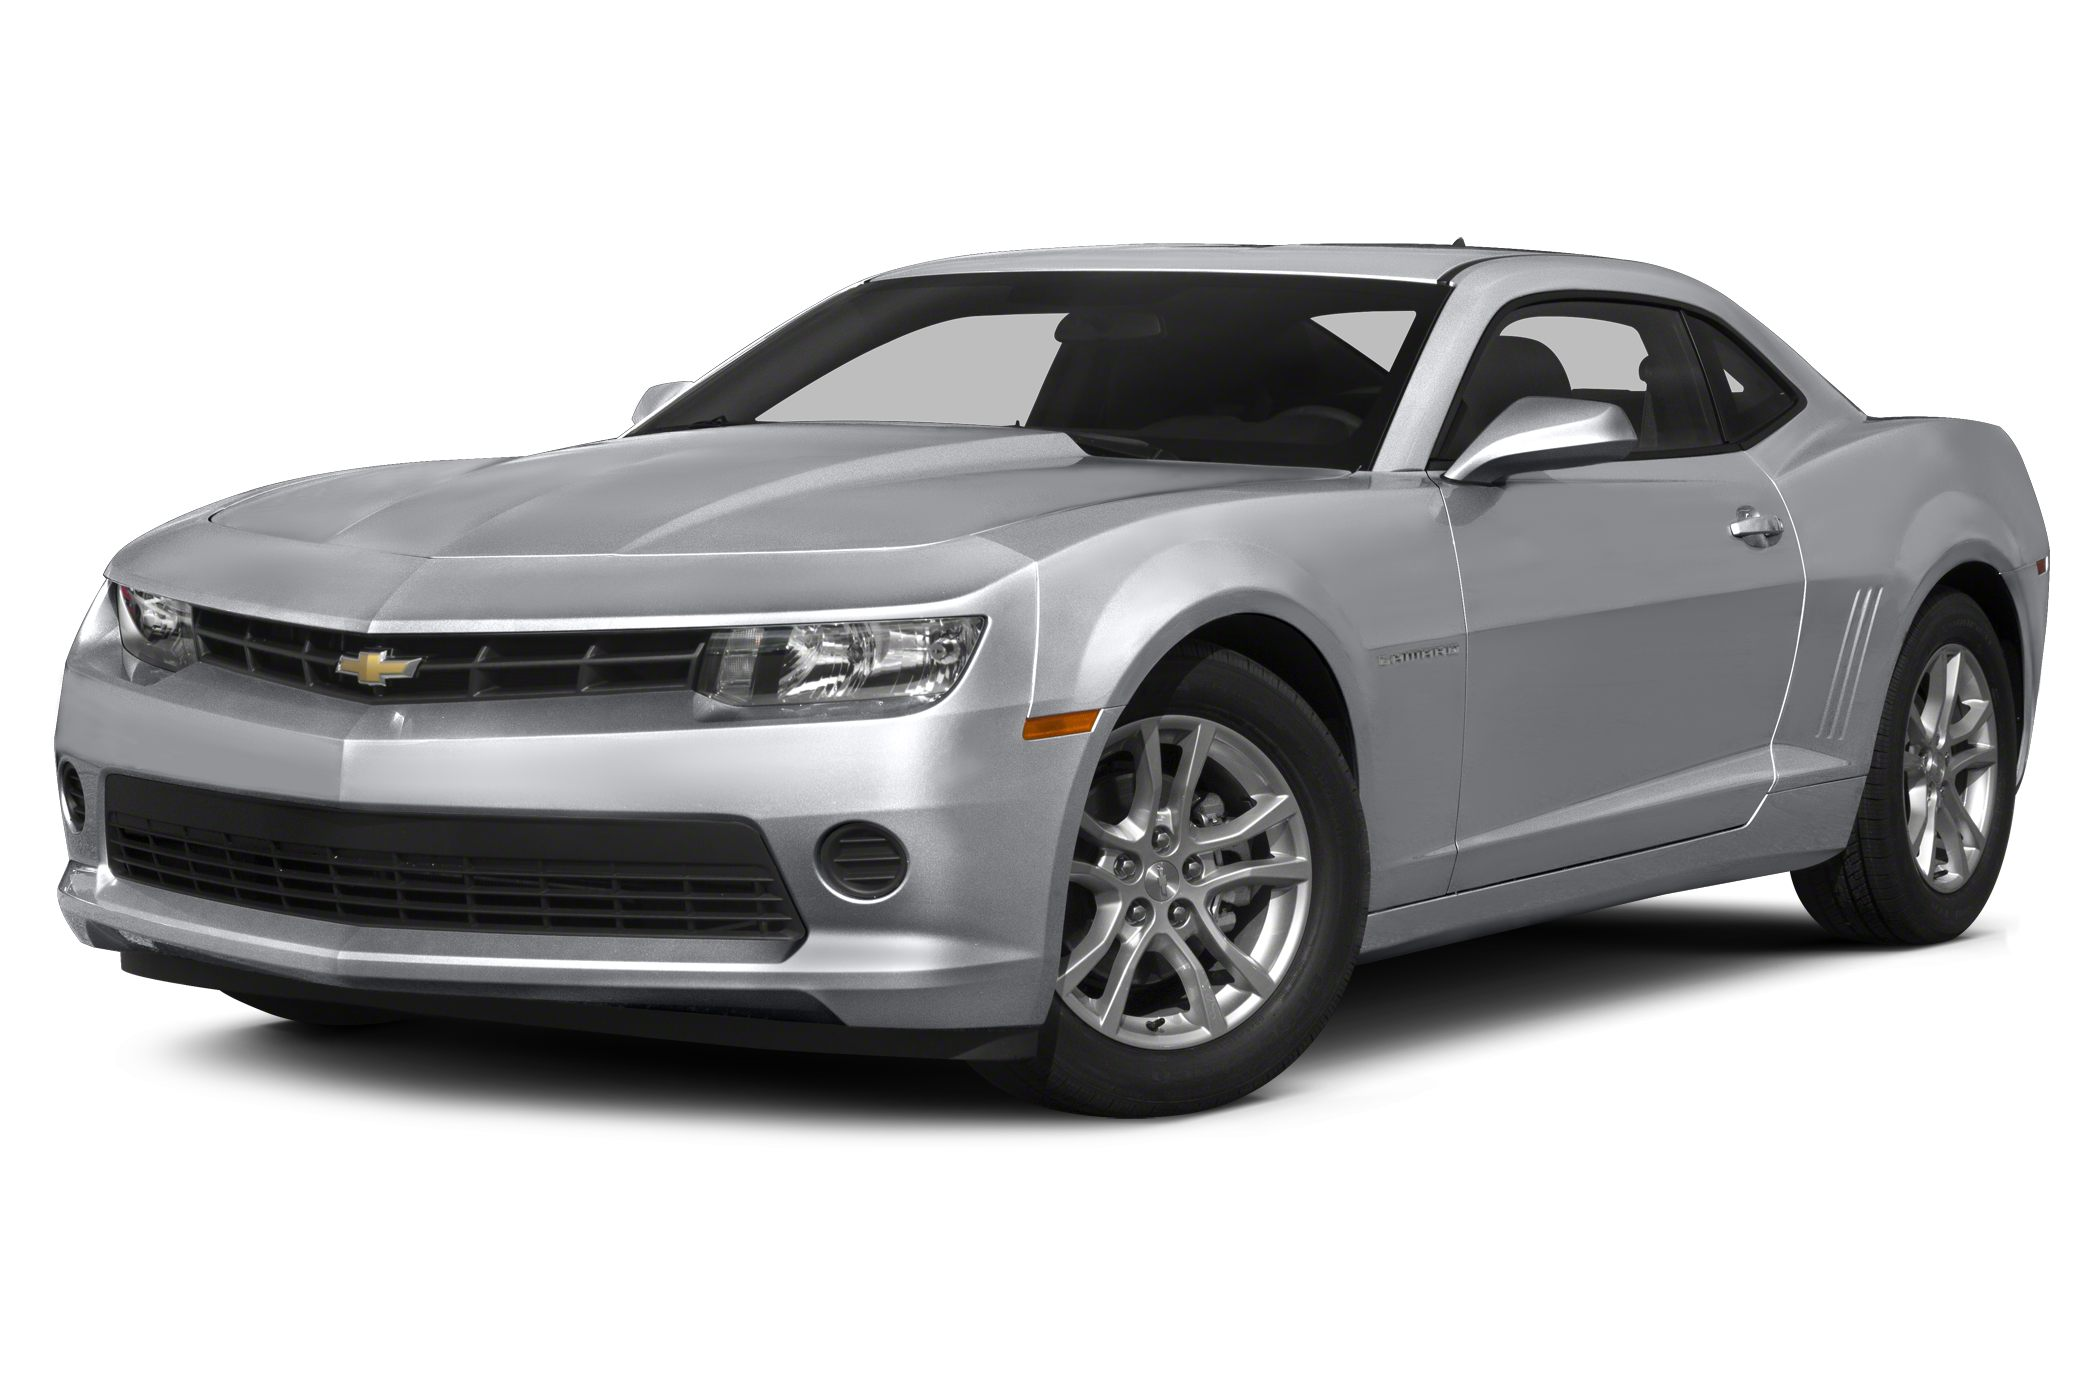 2015 Chevrolet Camaro 1LT Coupe for sale in Buford for $30,360 with 0 miles